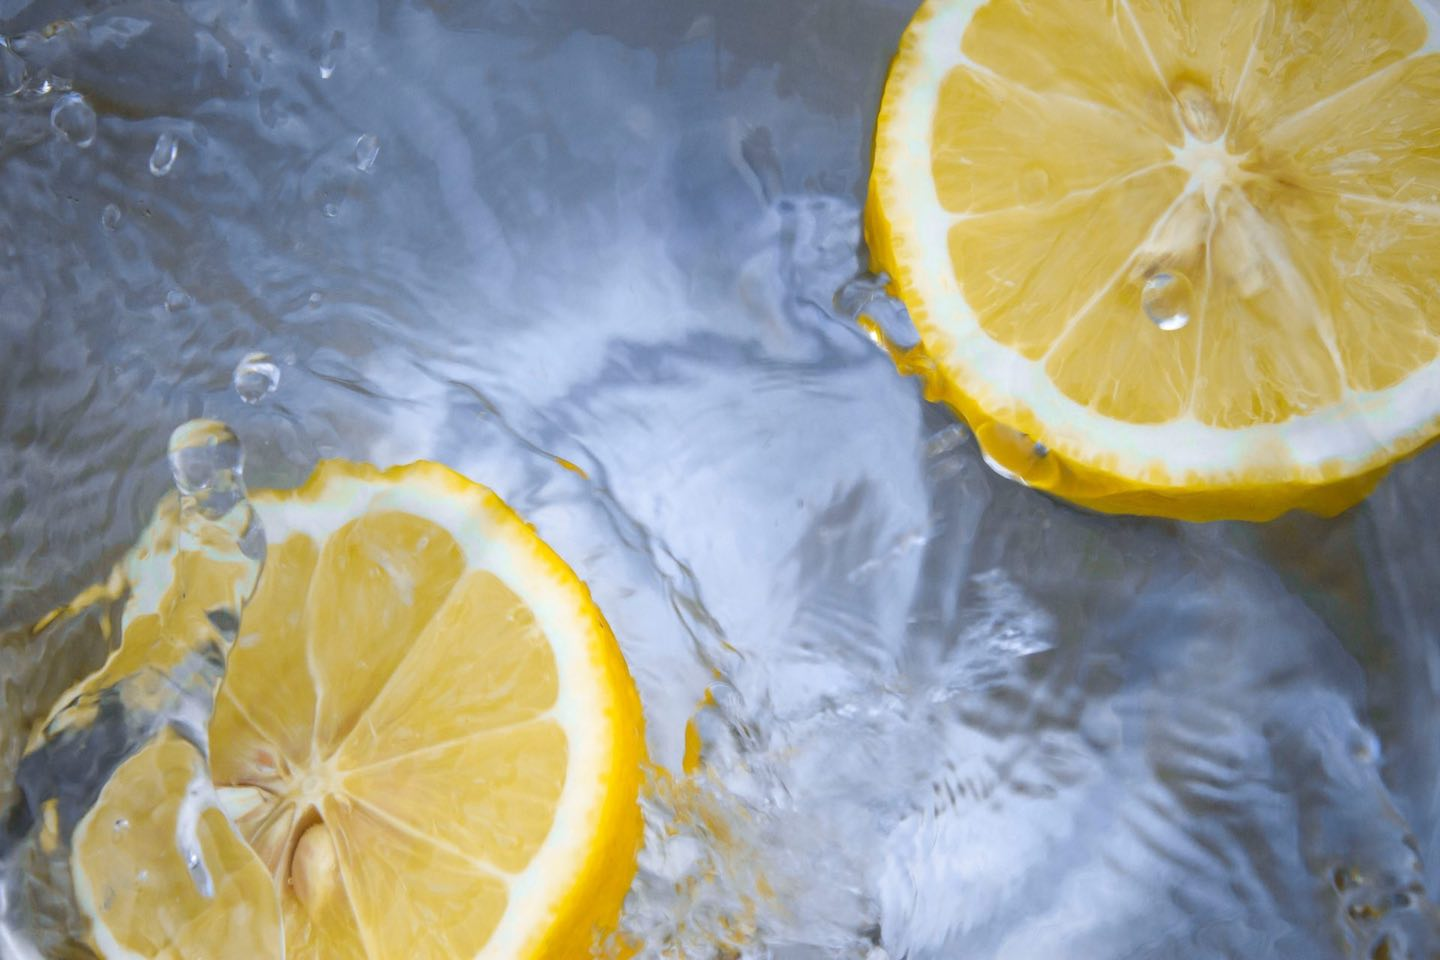 Image of lemon slices in water